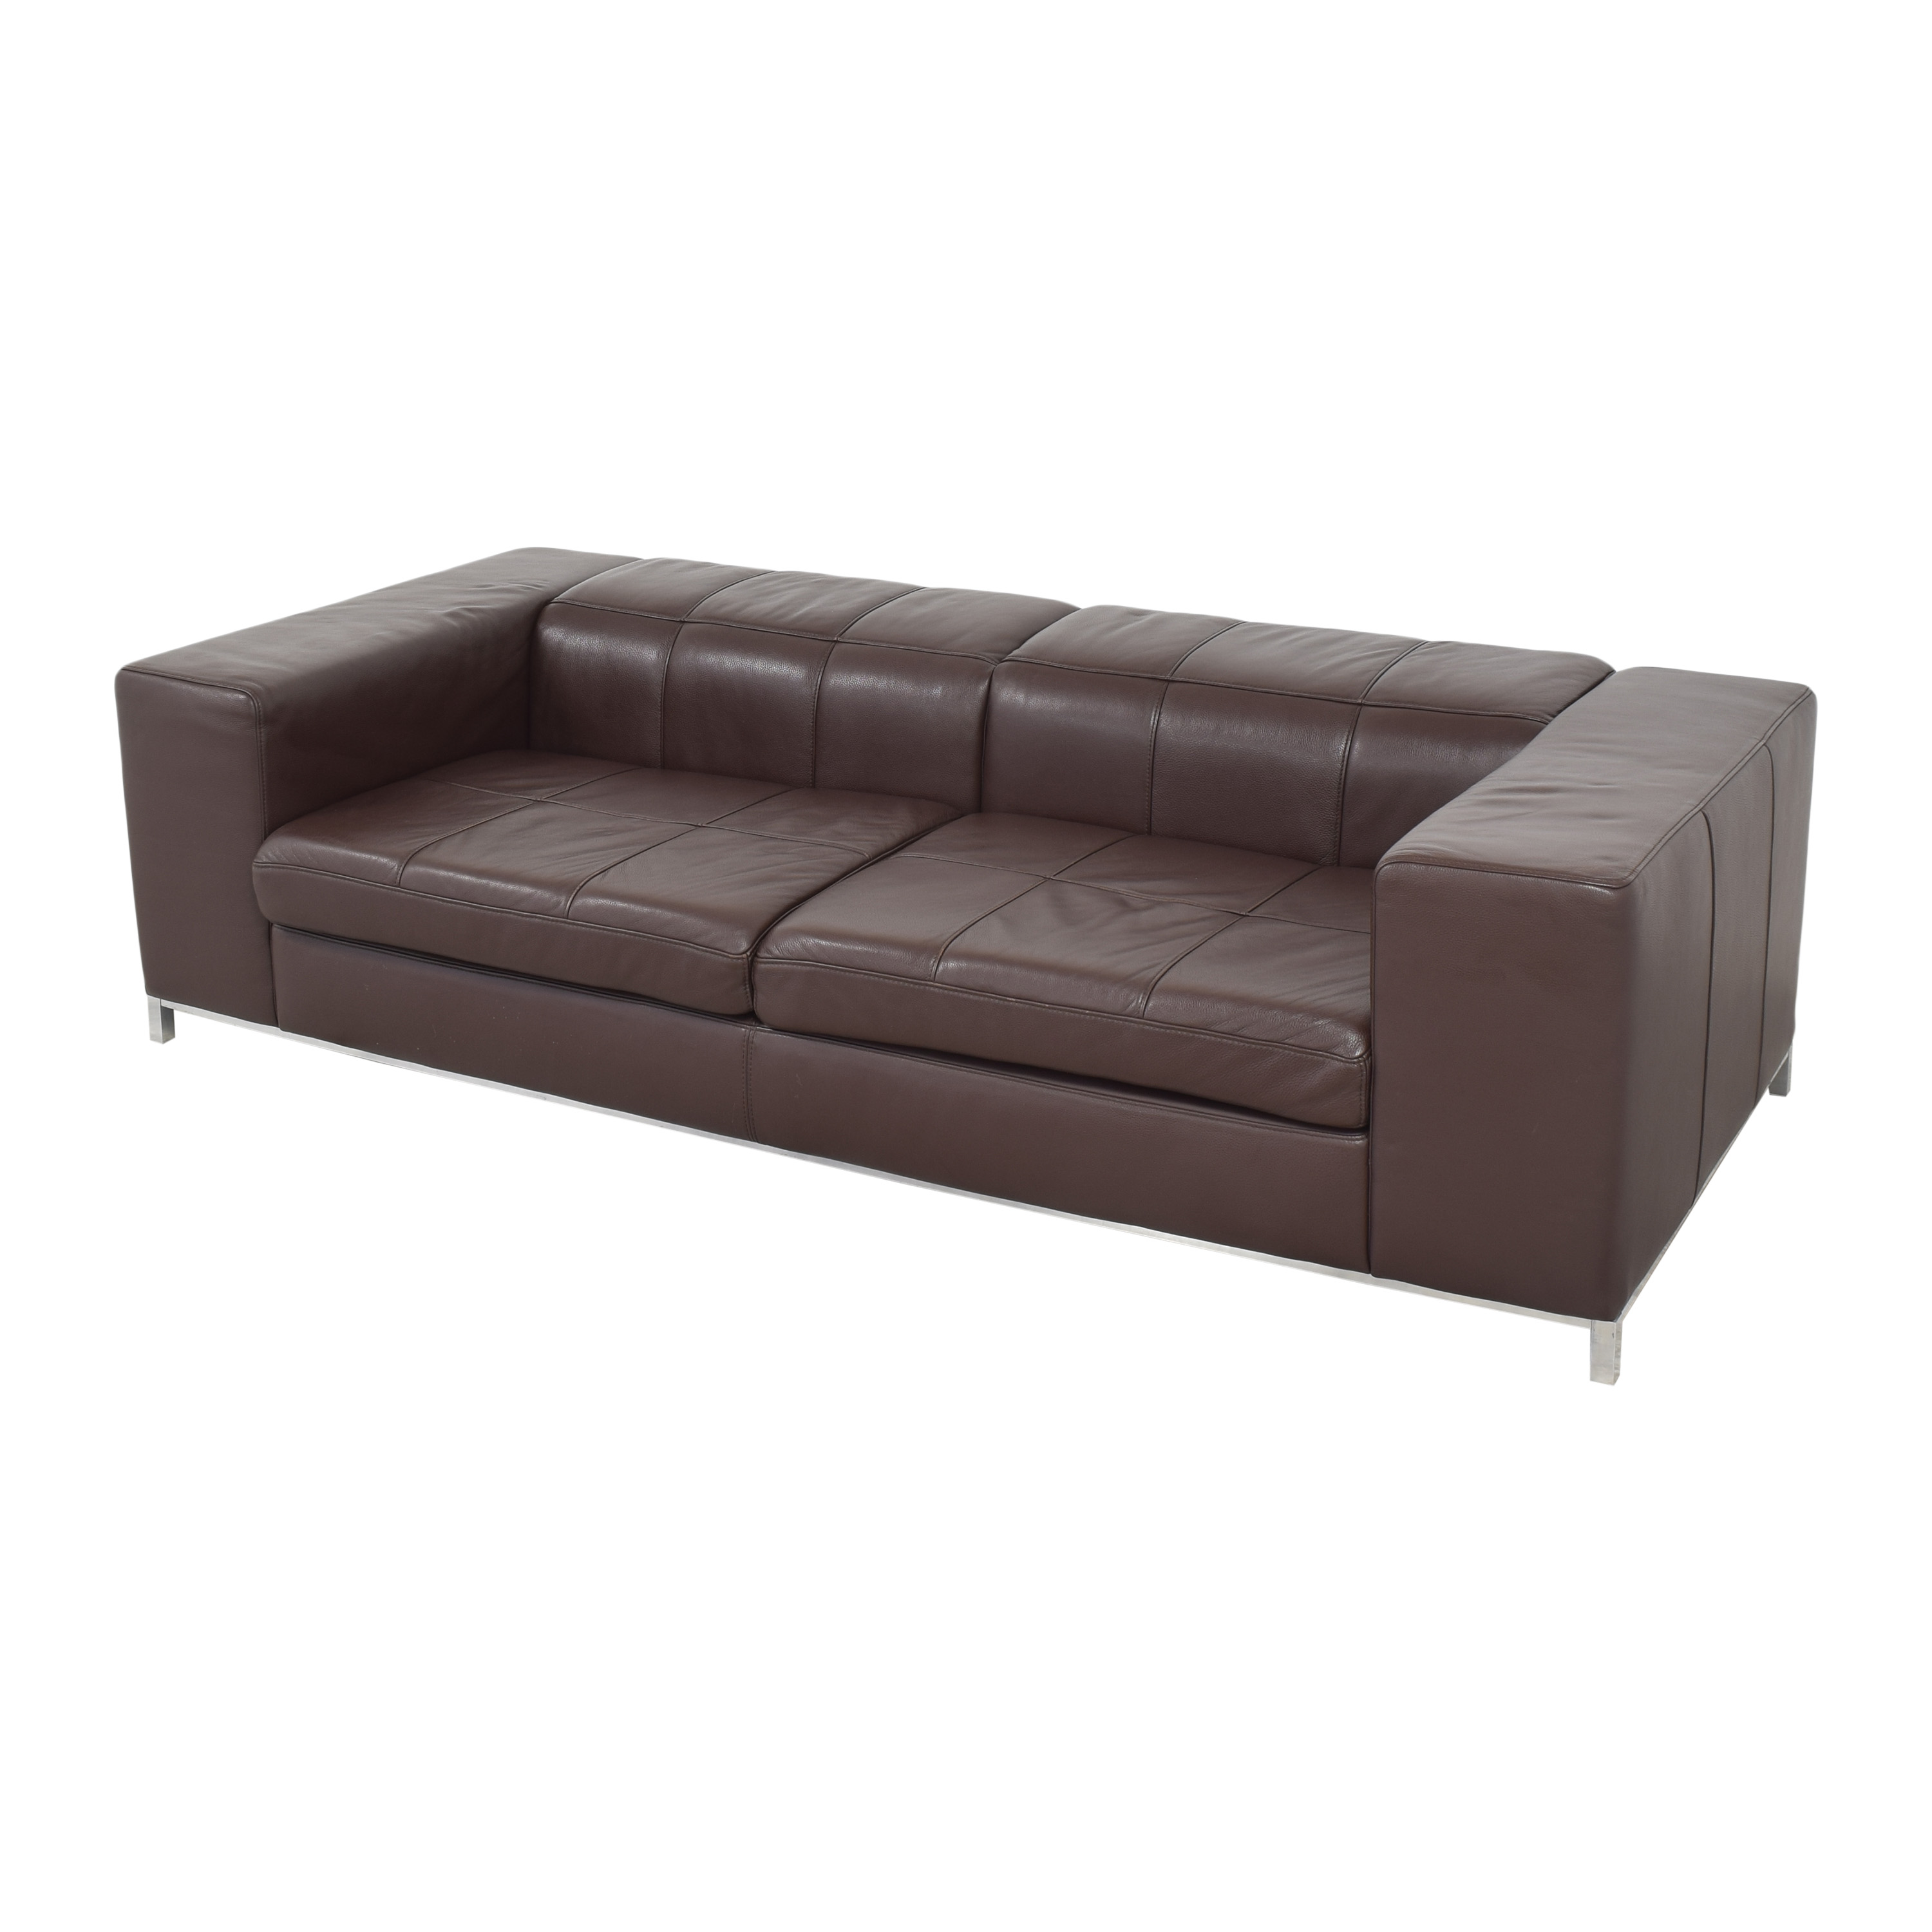 Maurice Villency Maurice Villency View Maxi Sofa used